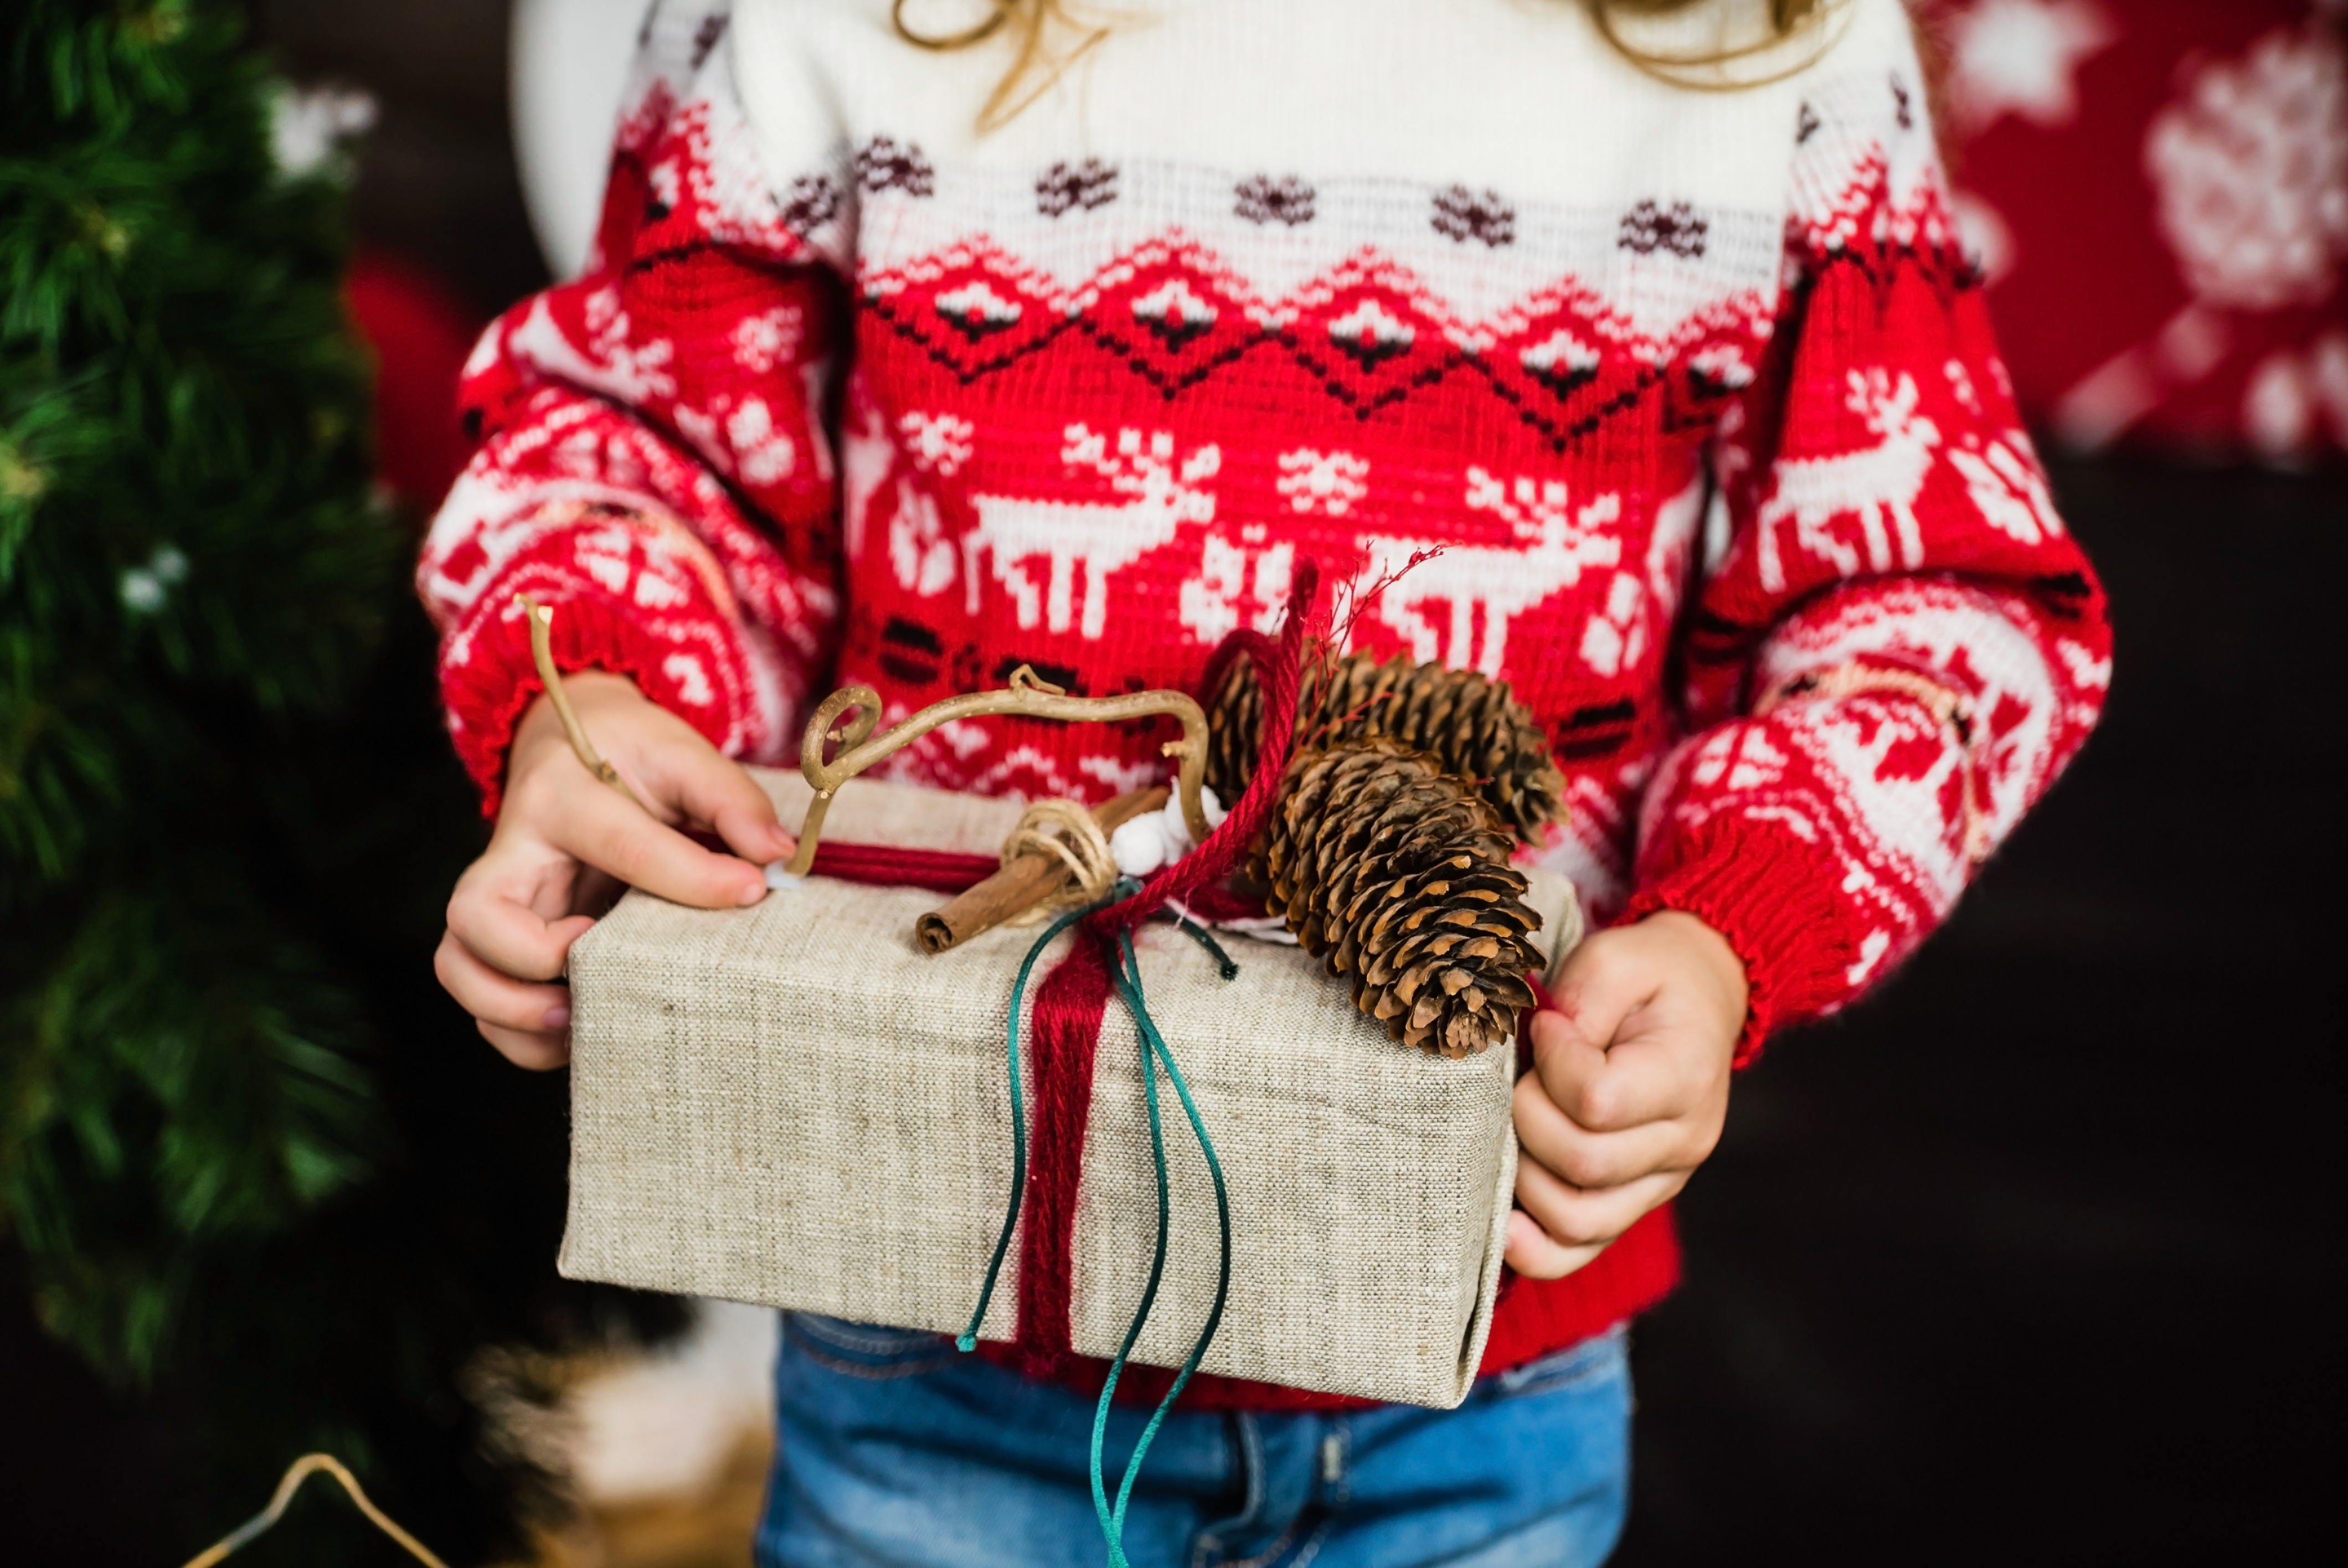 Christmas Sweaters: Horrible Gift or Holiday Couture? – Christmas HQ